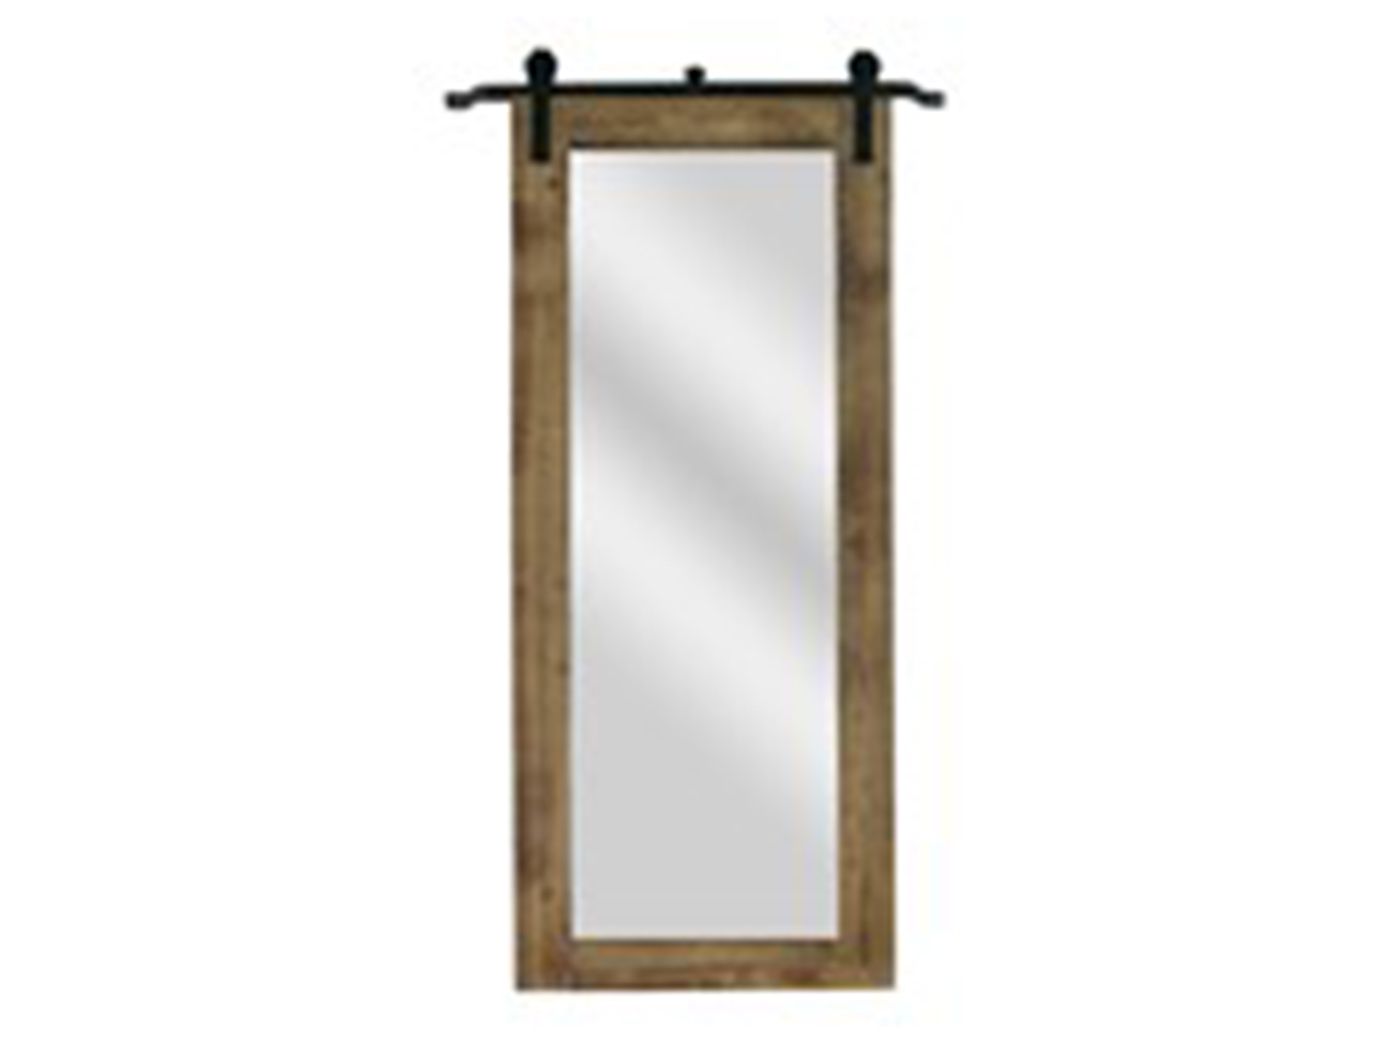 Accents – Mirrors | Steinhafels With Regard To Traditional Beveled Accent Mirrors (View 24 of 30)